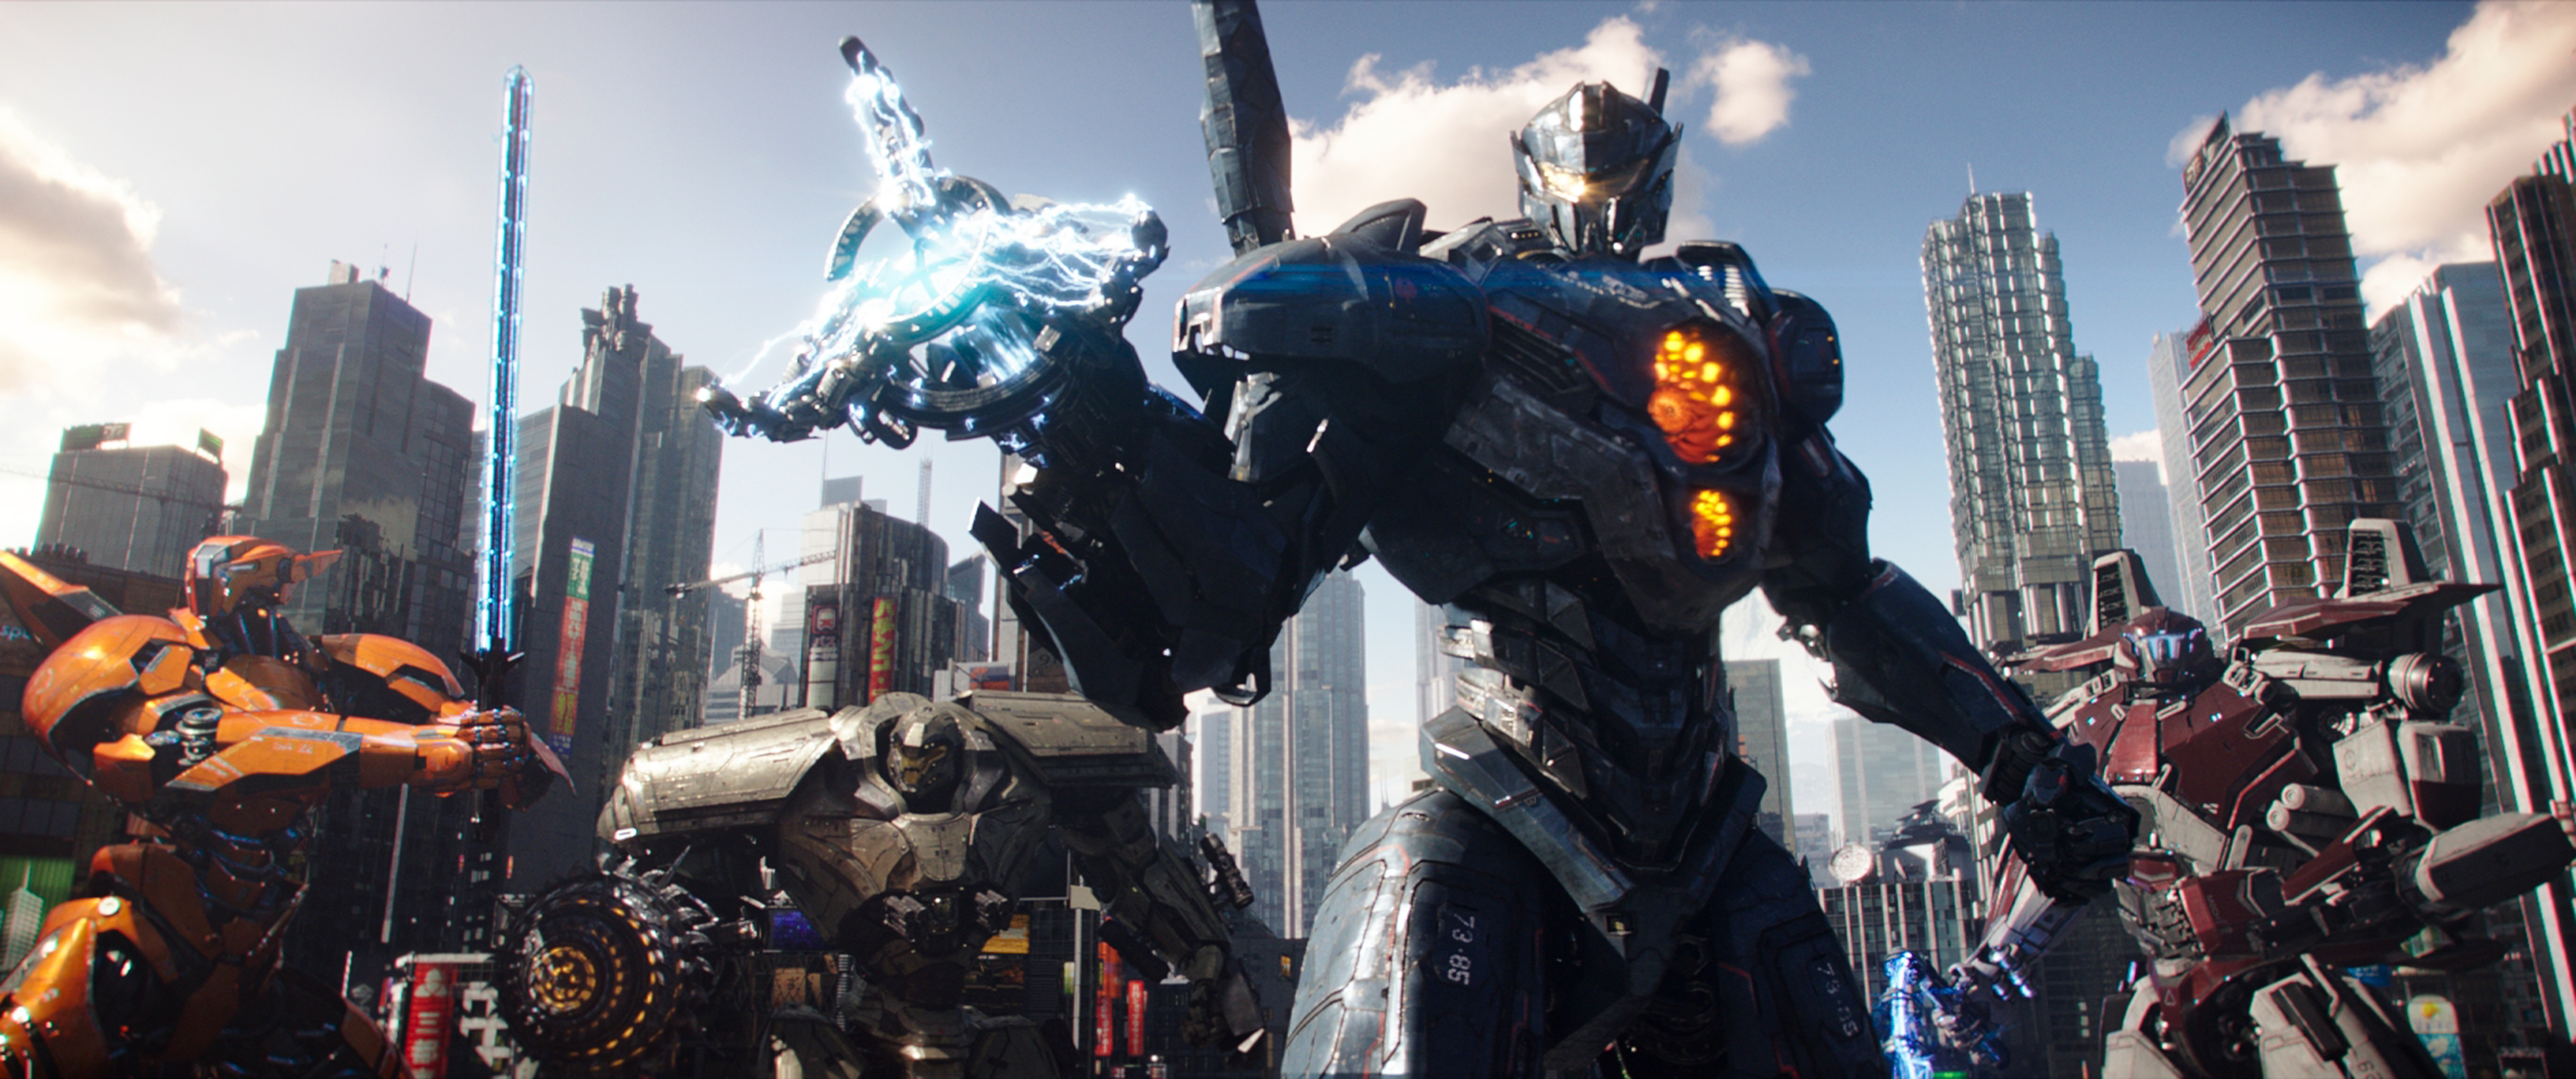 PACIFIC RIM UPRISING TRAILER #2